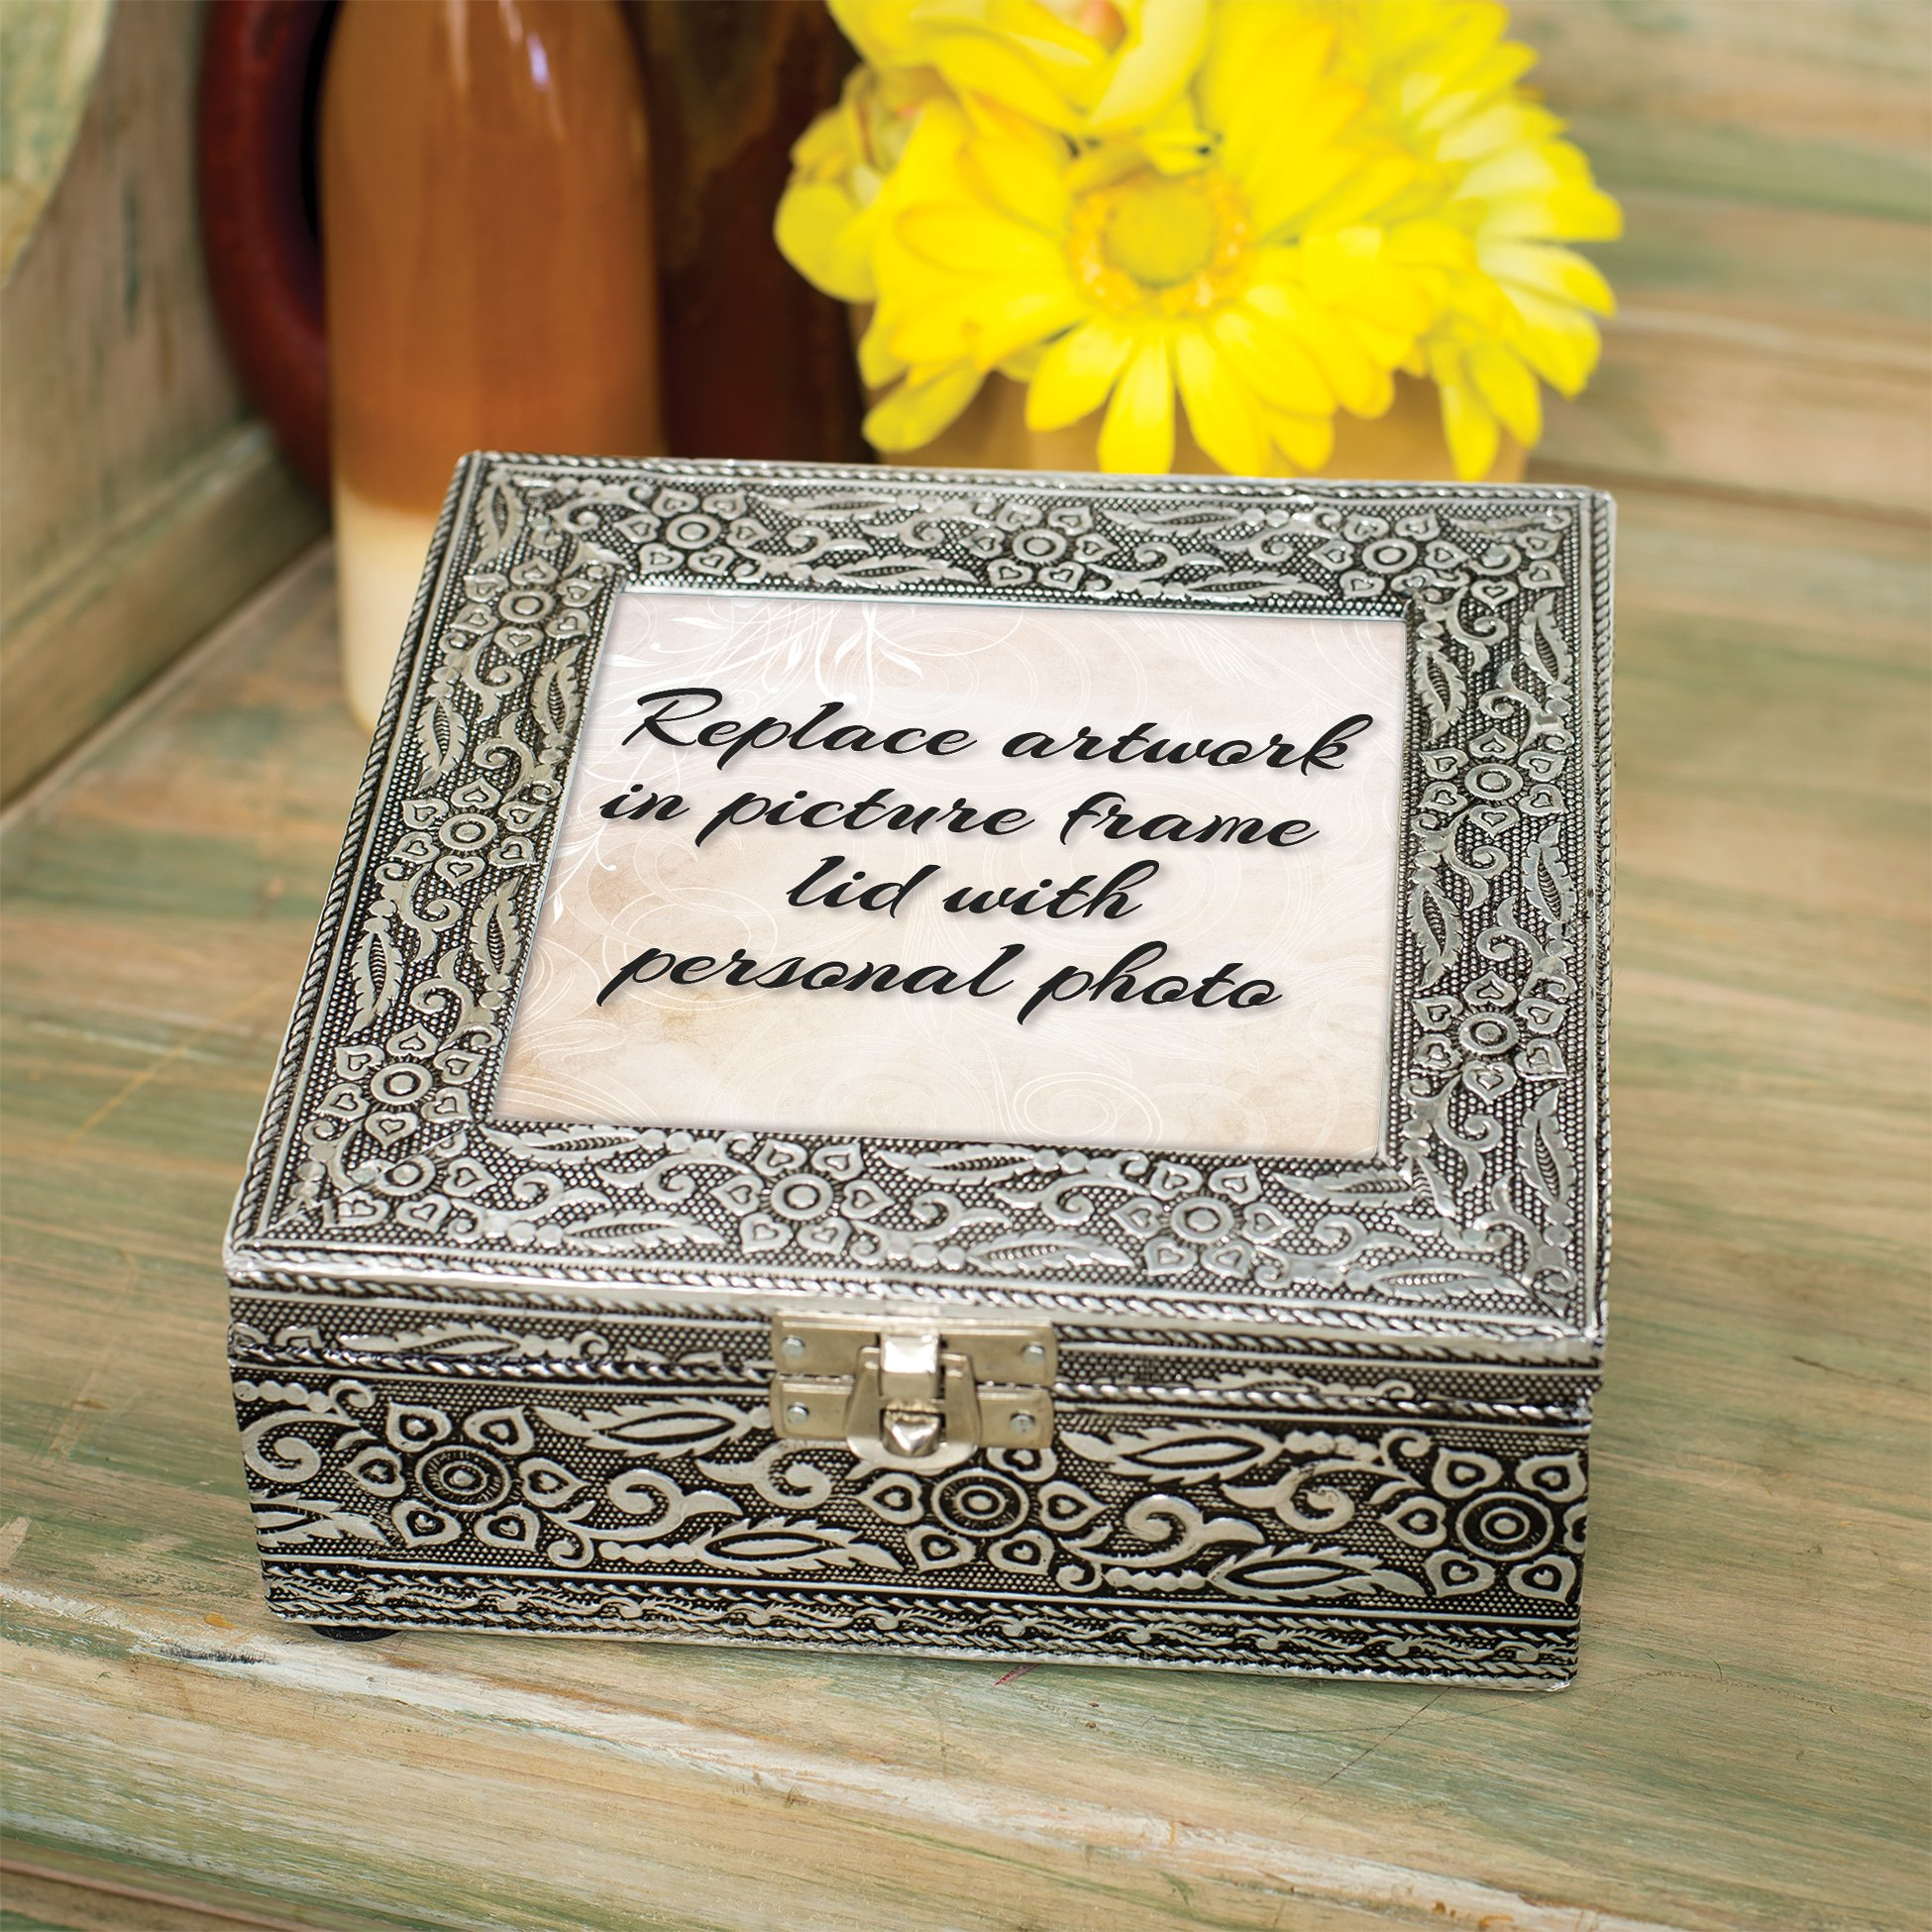 Cottage Garden Sister Together Always in Heart Silver Stamped Metal Jewelry Music Box Plays Tune That's What Friends are for by Cottage Garden (Image #7)